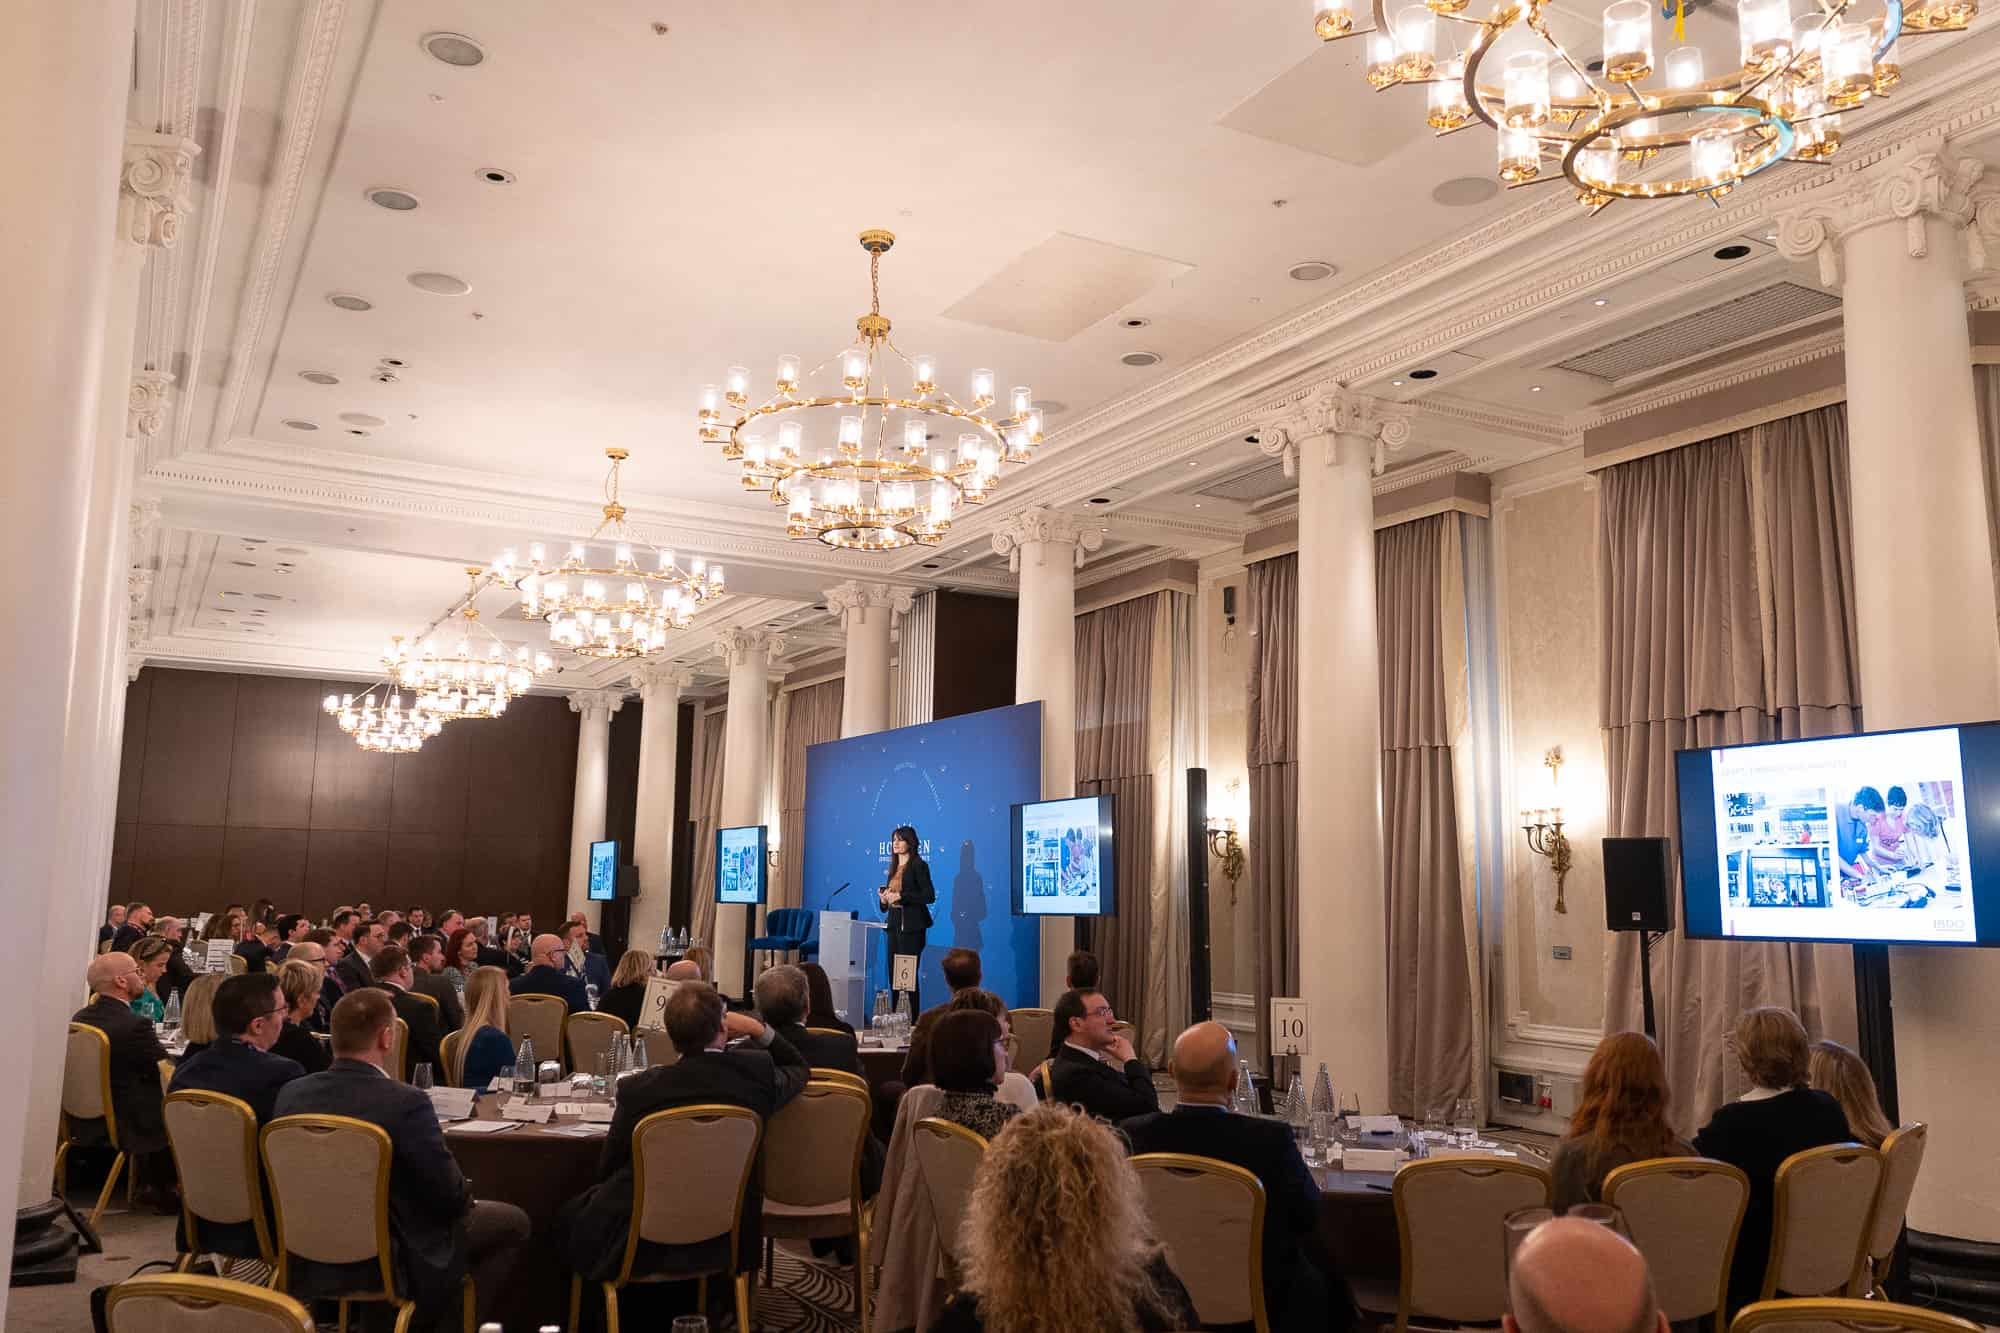 Houlden announces planned meeting dates for members and suppliers in 2021